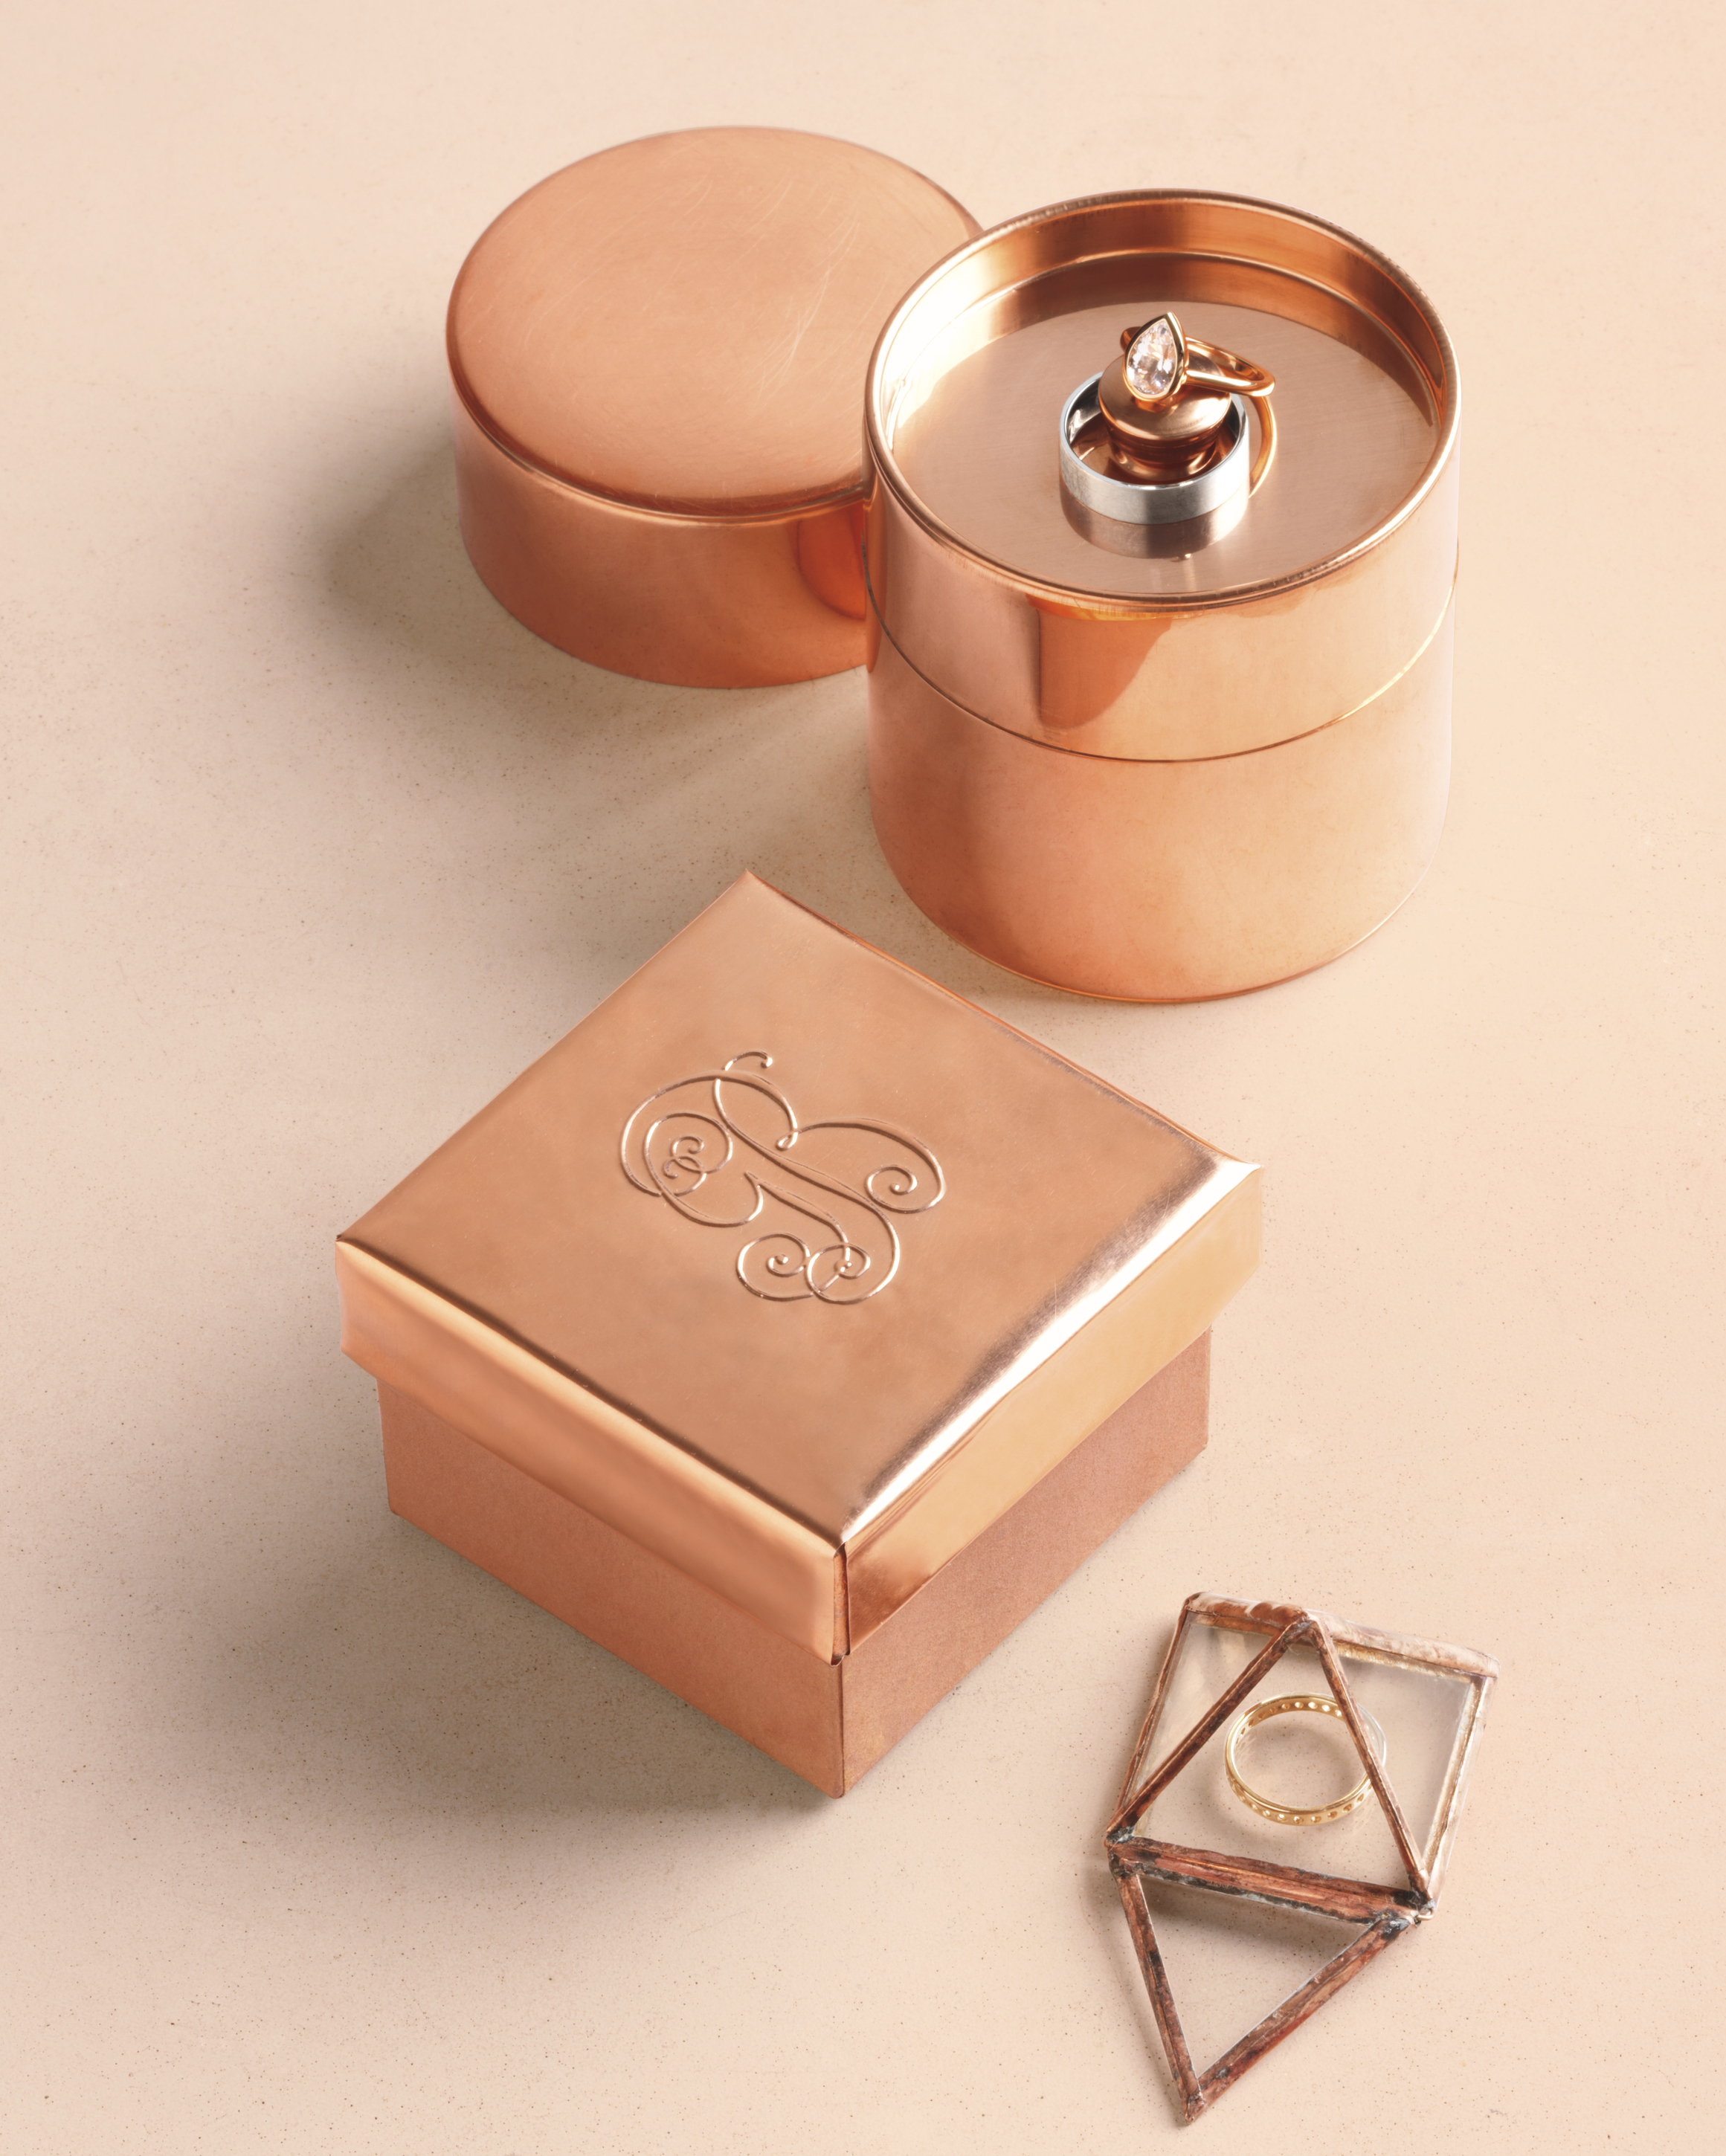 copper-ring-boxes-0032-d111902.jpg